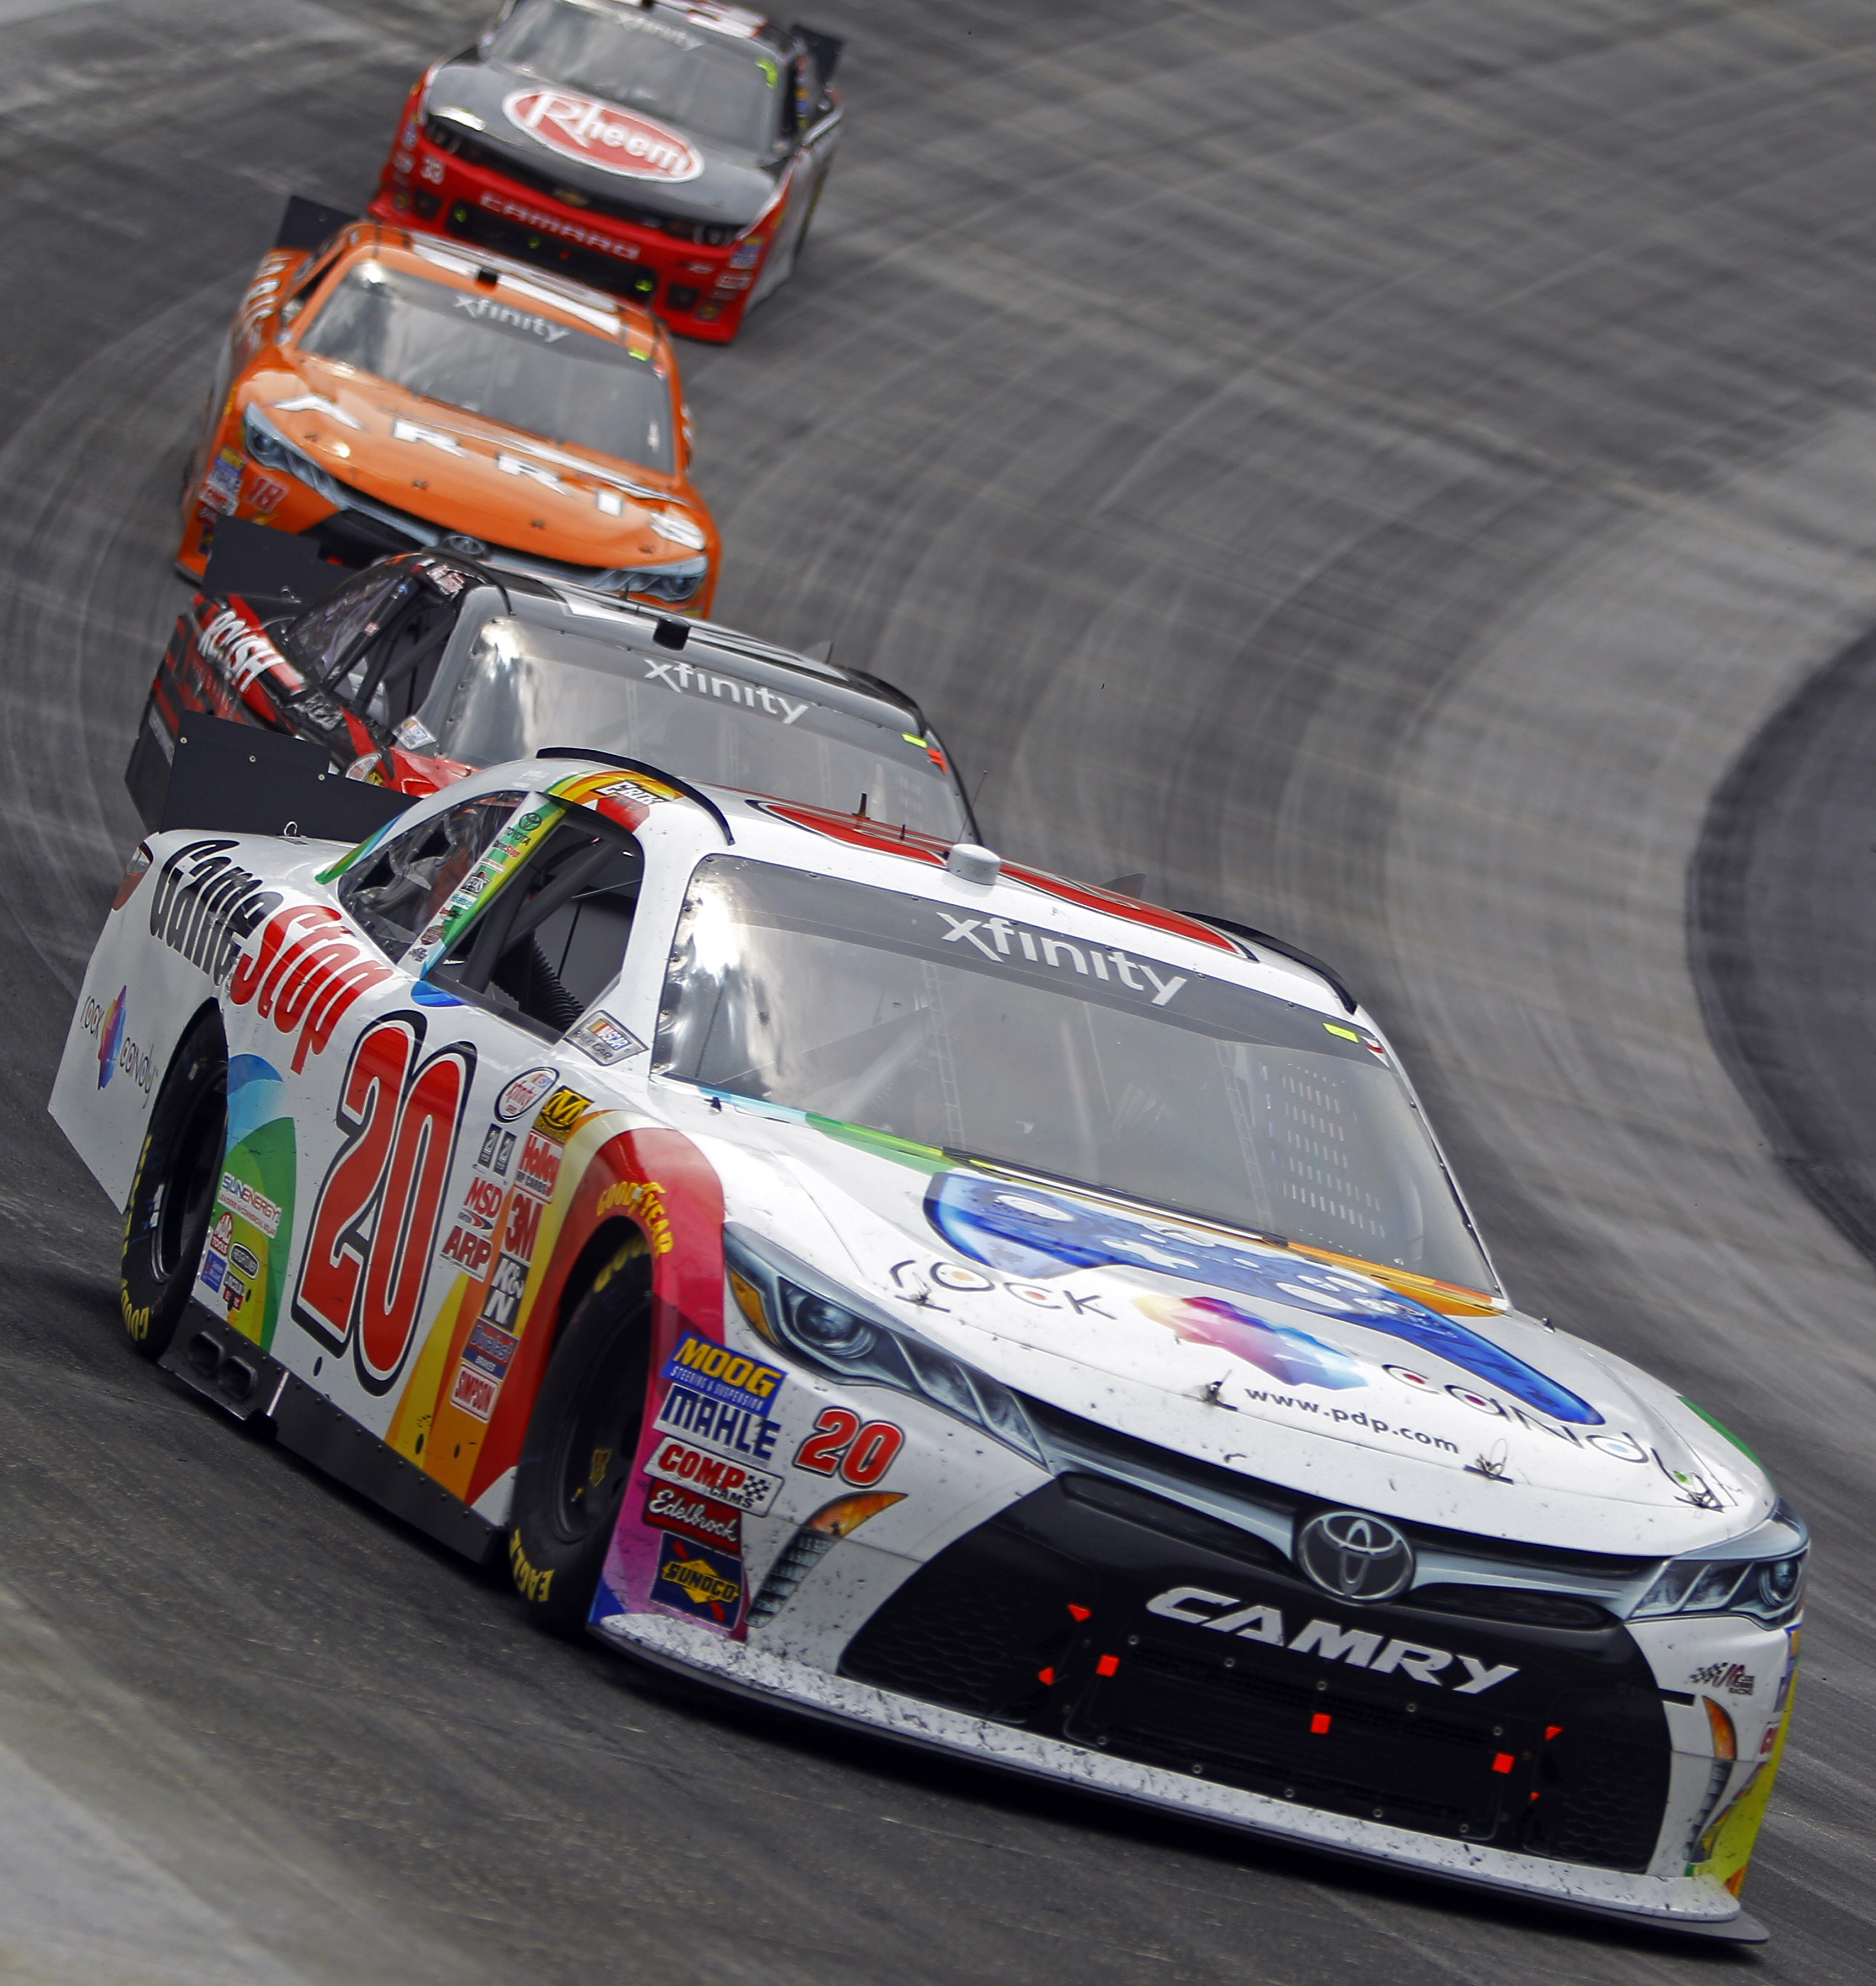 Logano leads flag-to-flag to win Xfinity race at Bristol